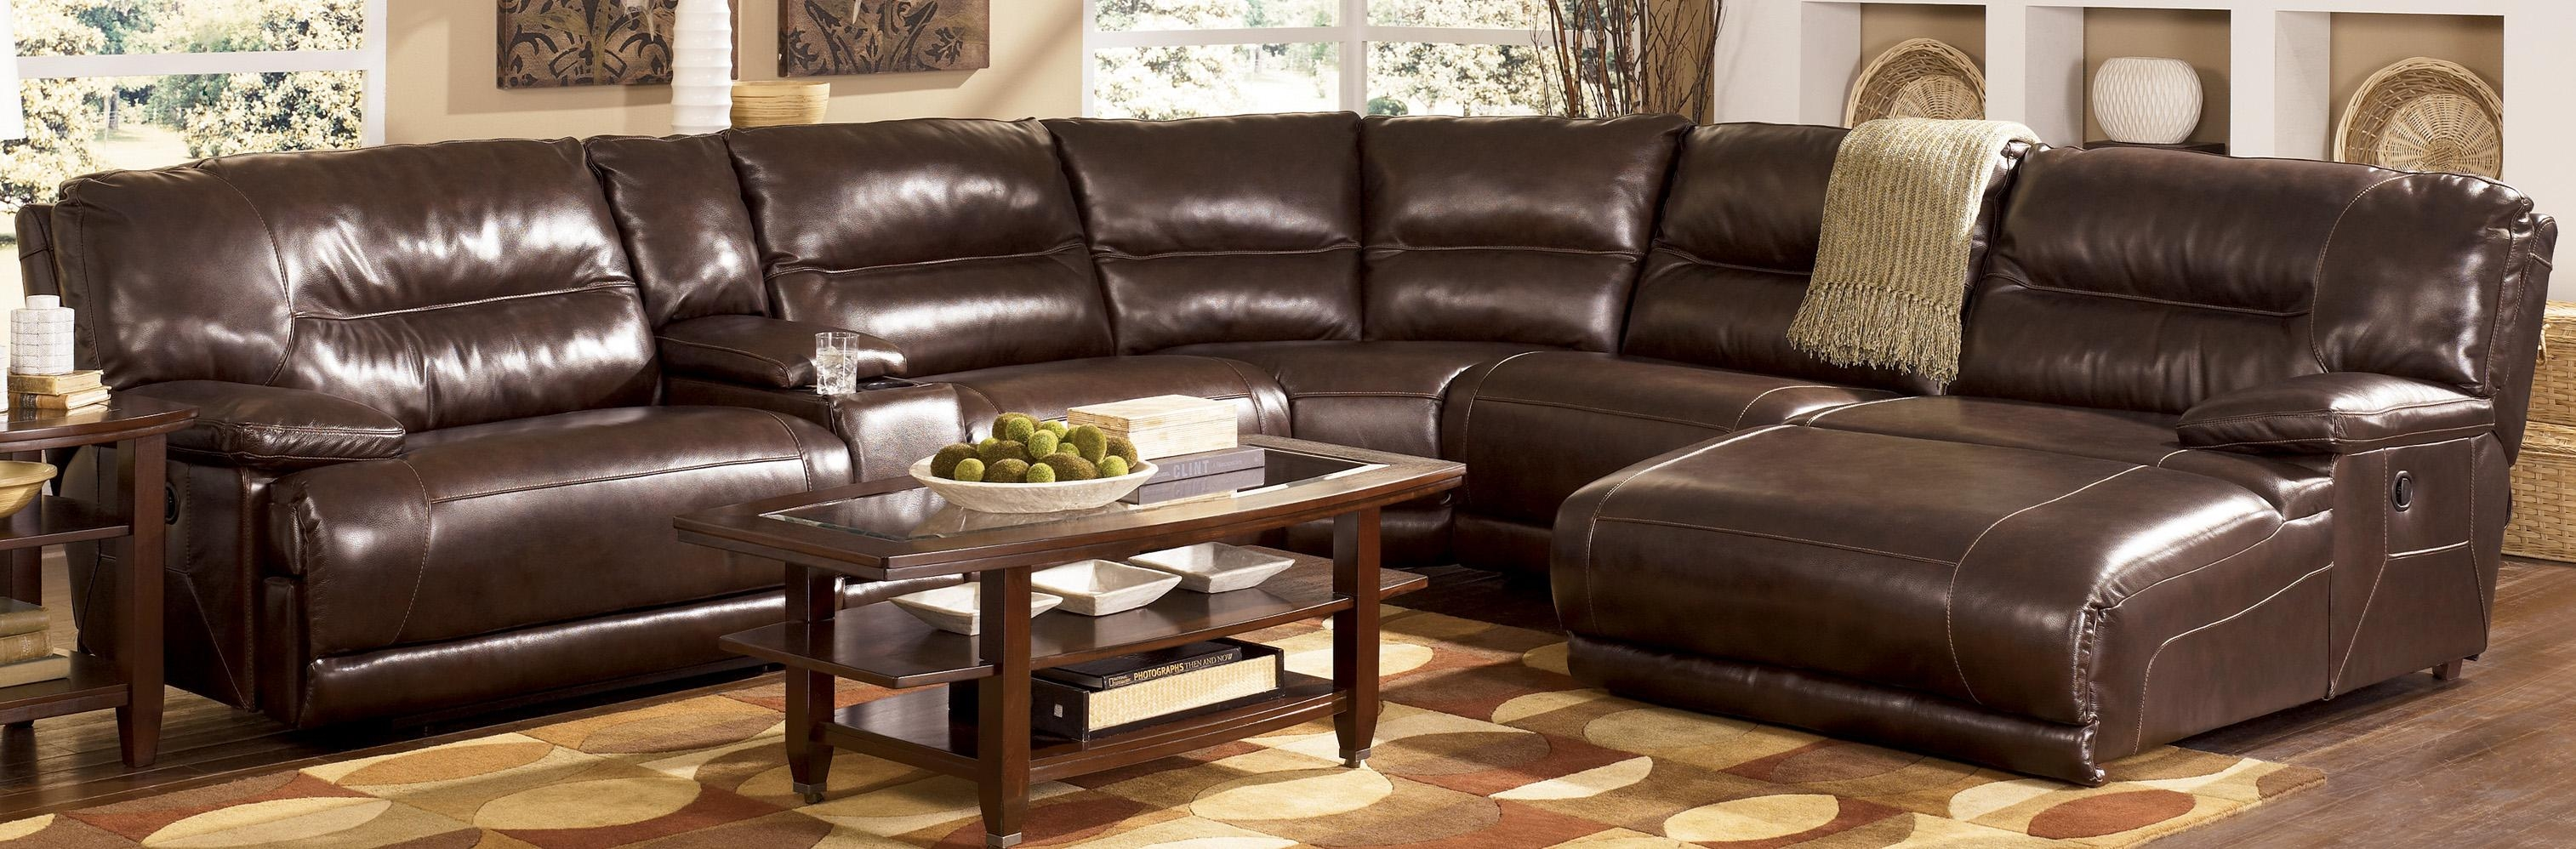 Sofas Center : Thomasville Sofas Fremont Sectional Sofa Leather Throughout Thomasville Leather Sectionals (View 5 of 20)